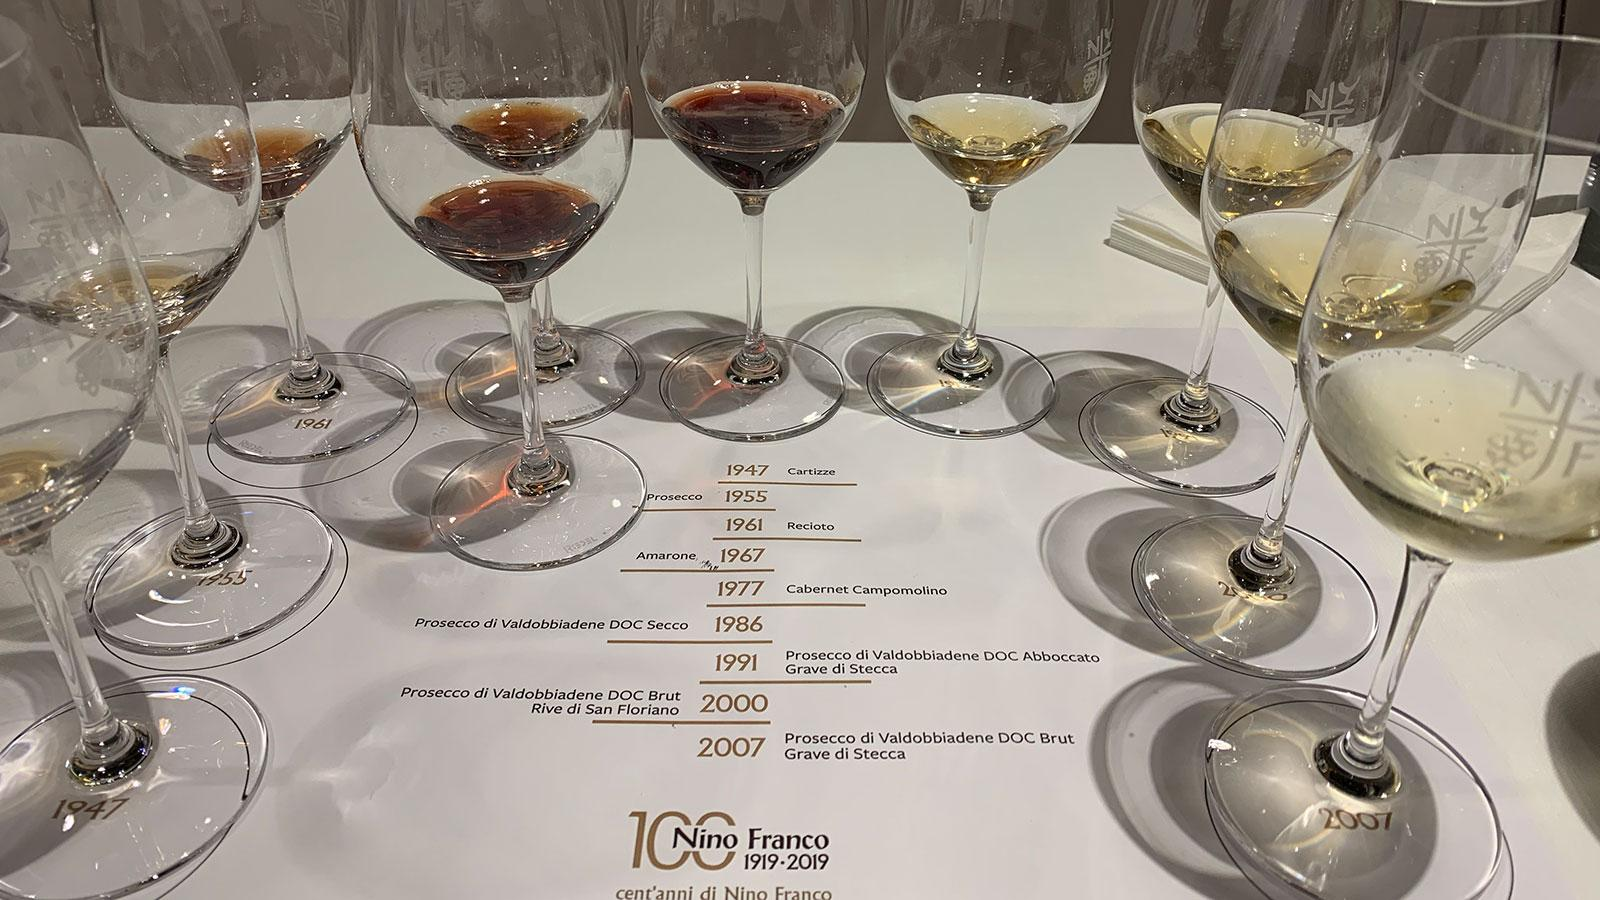 A tasting of Nino Franco wines